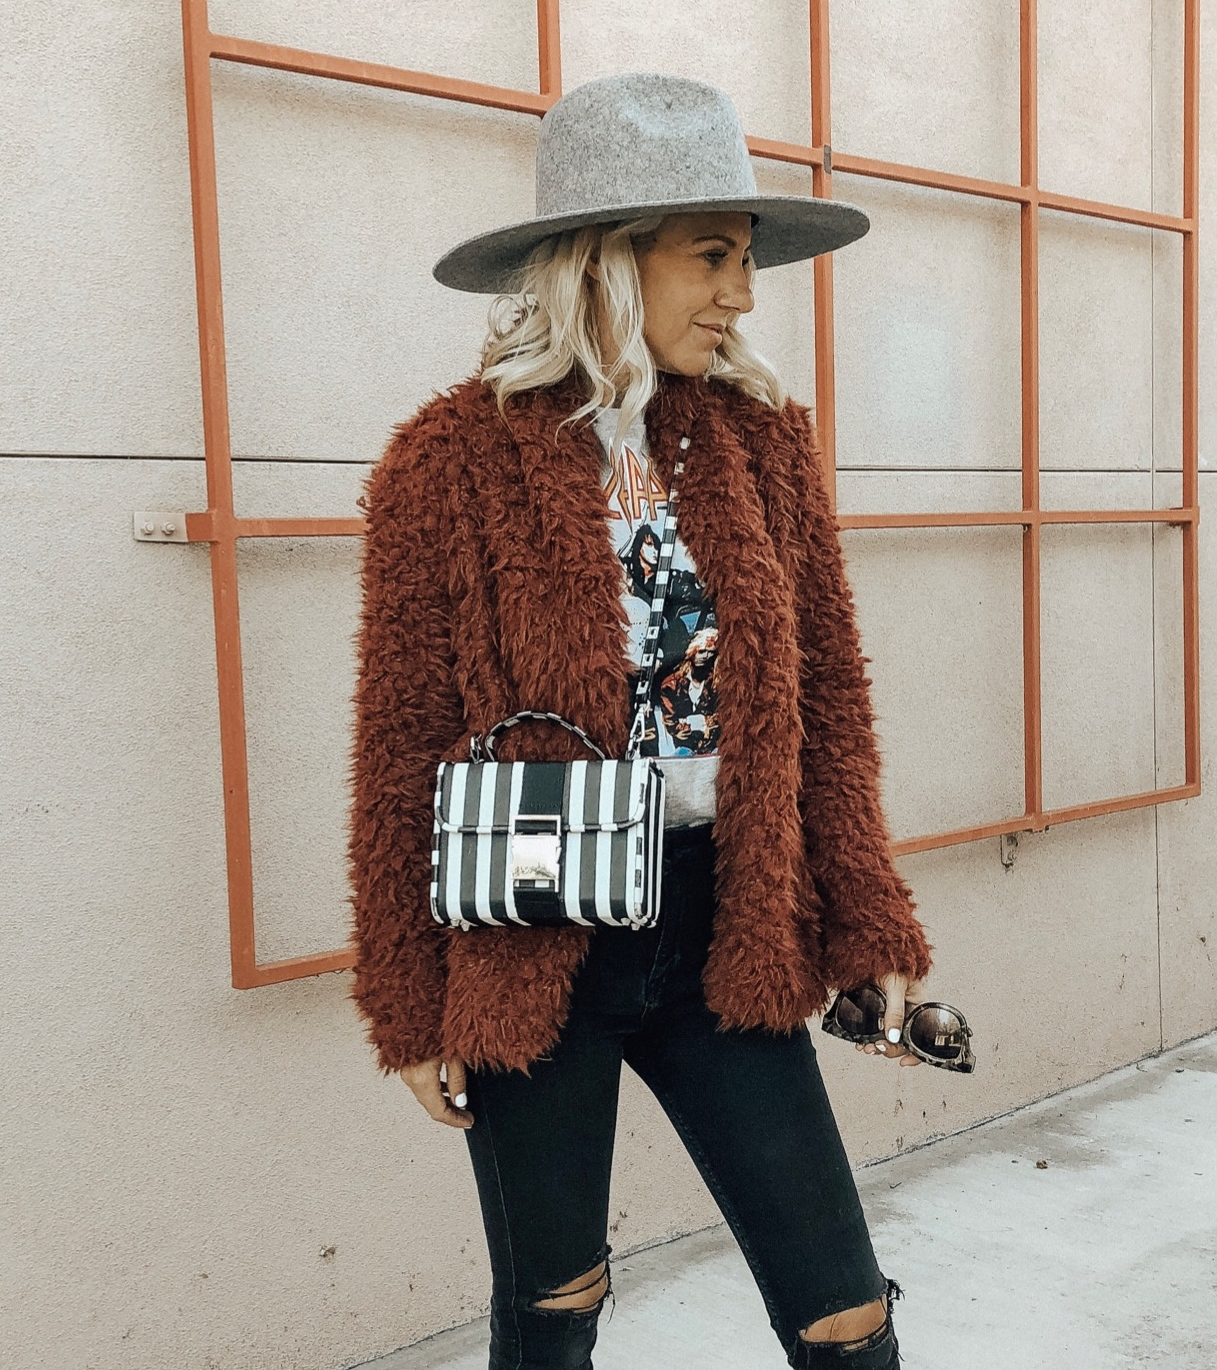 DECEMBER TOP 10- Jaclyn De Leon Style + cozy faux fur jacket + striped handbag + winter style + band tee + belk + nordstrom style + casual street style + cozy winter layers